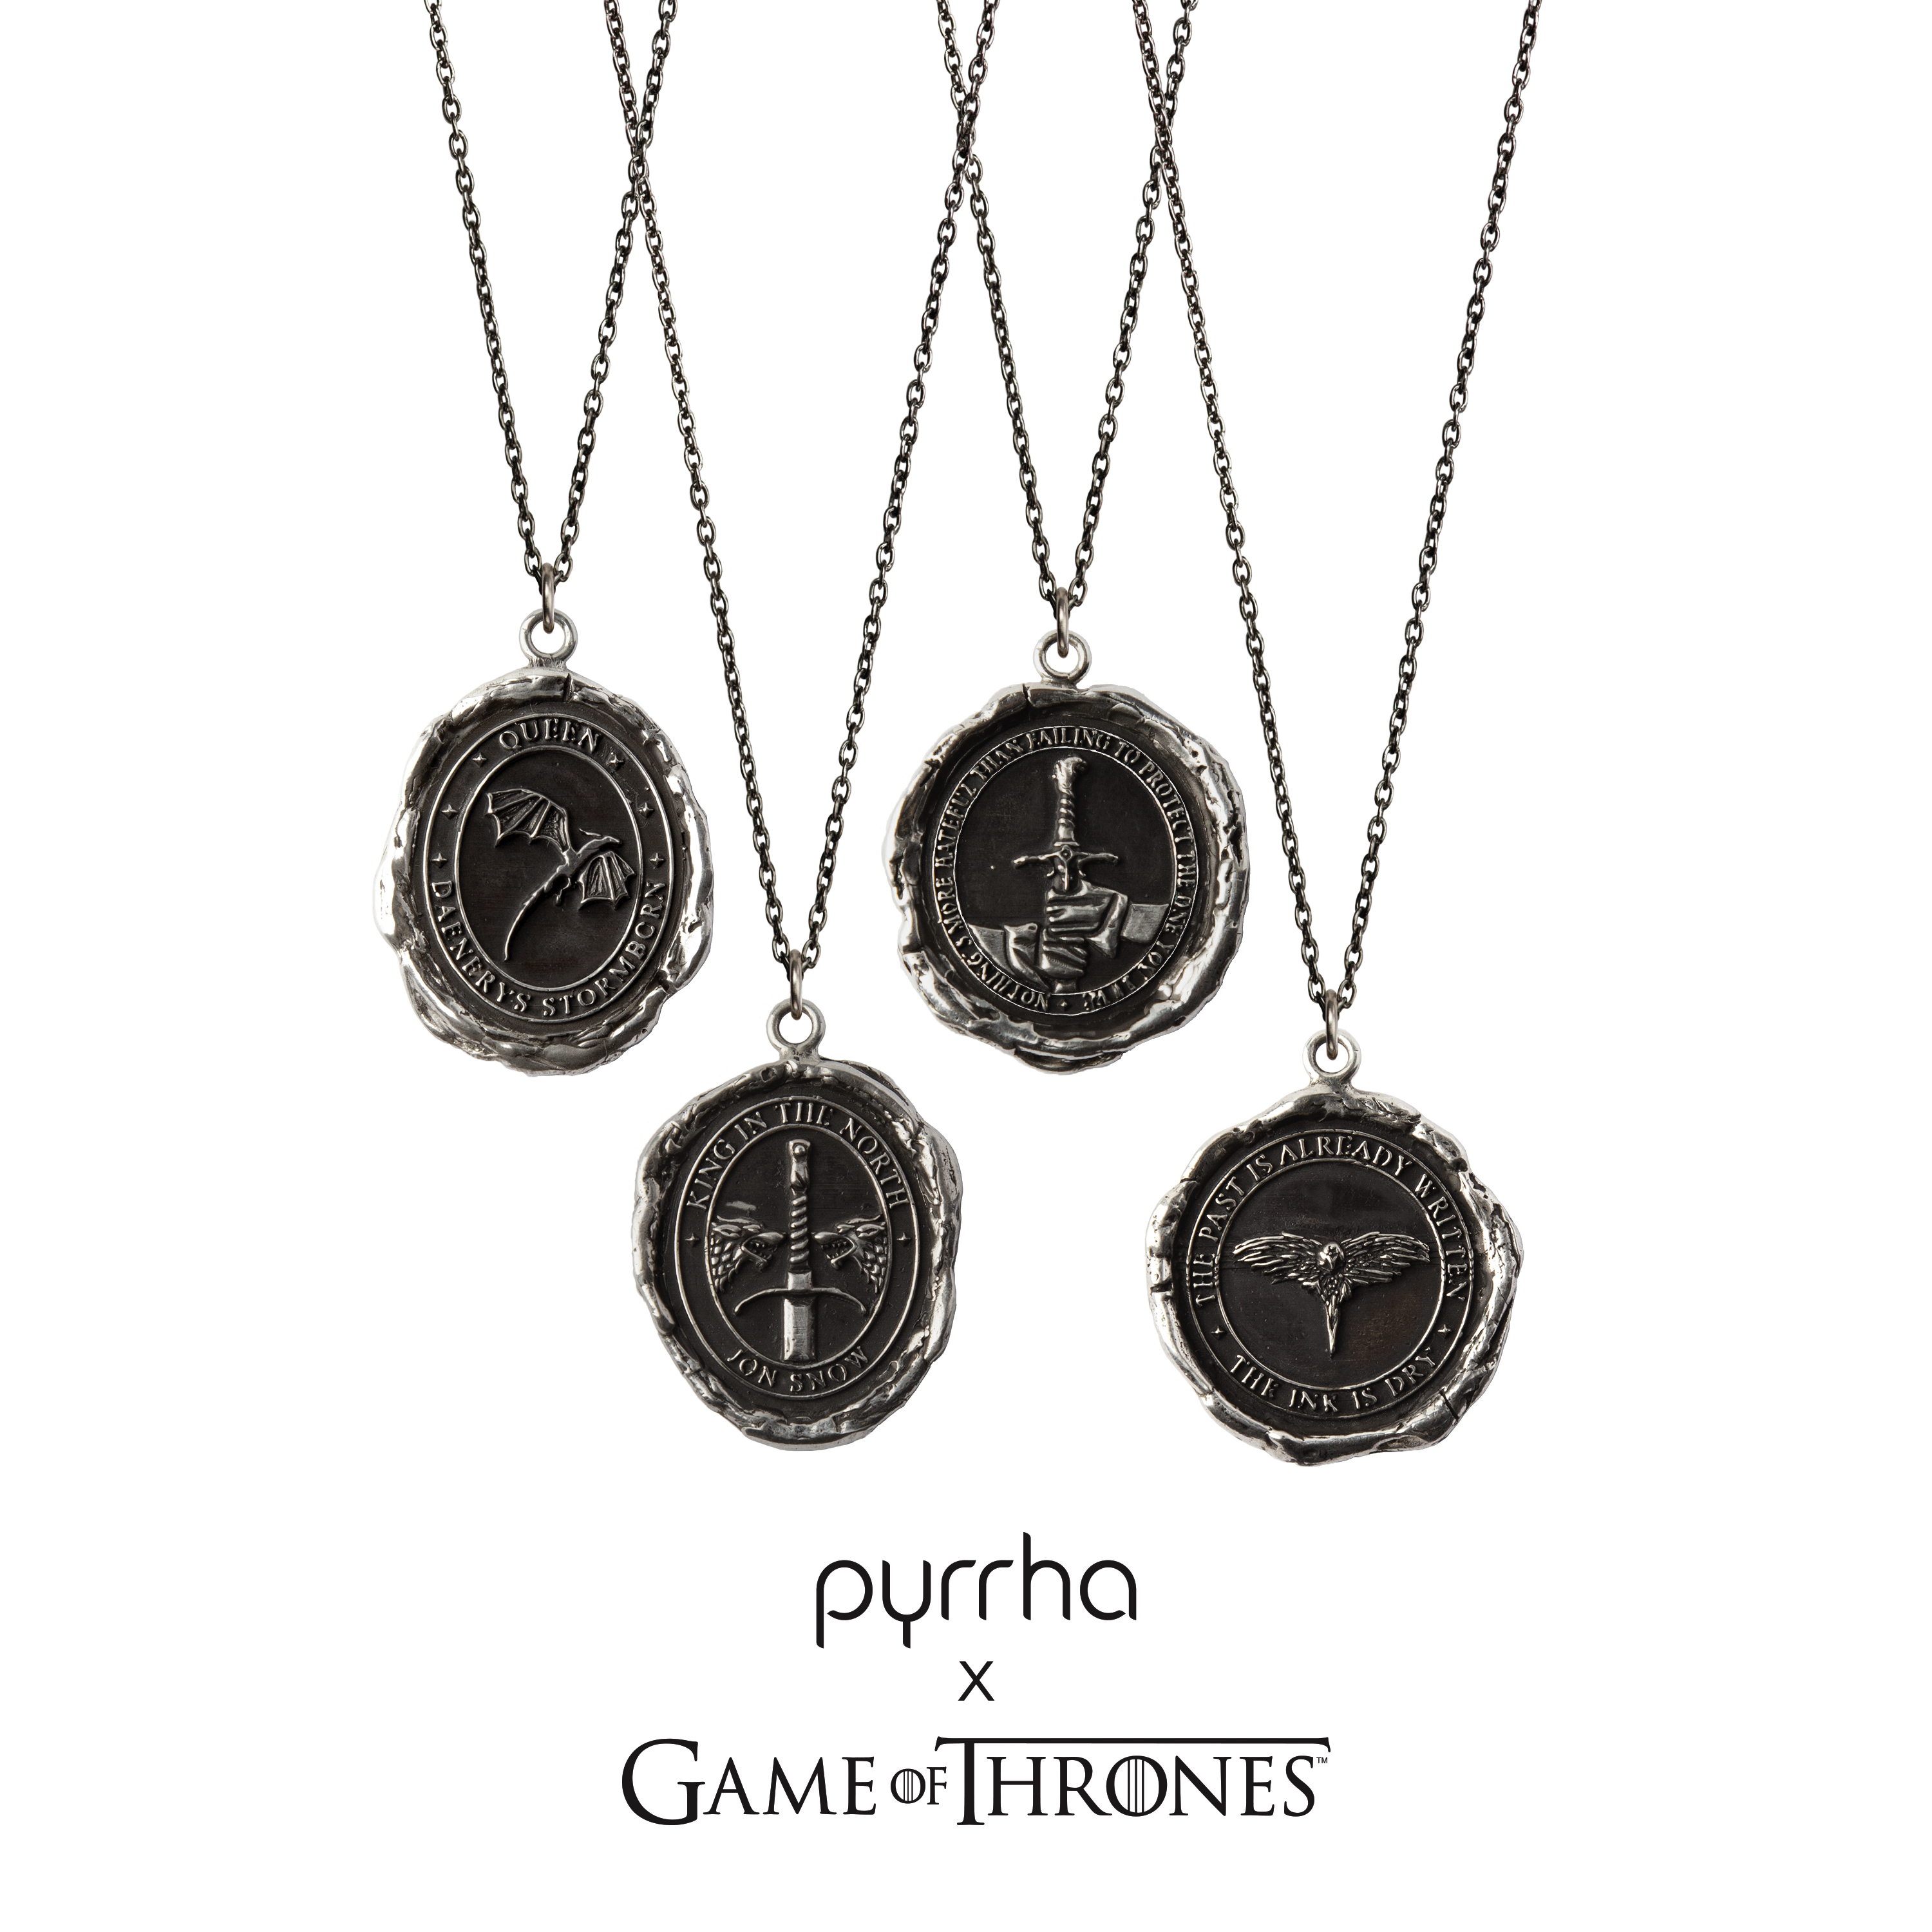 Pyrrha Launches New Game of Thrones Talismans